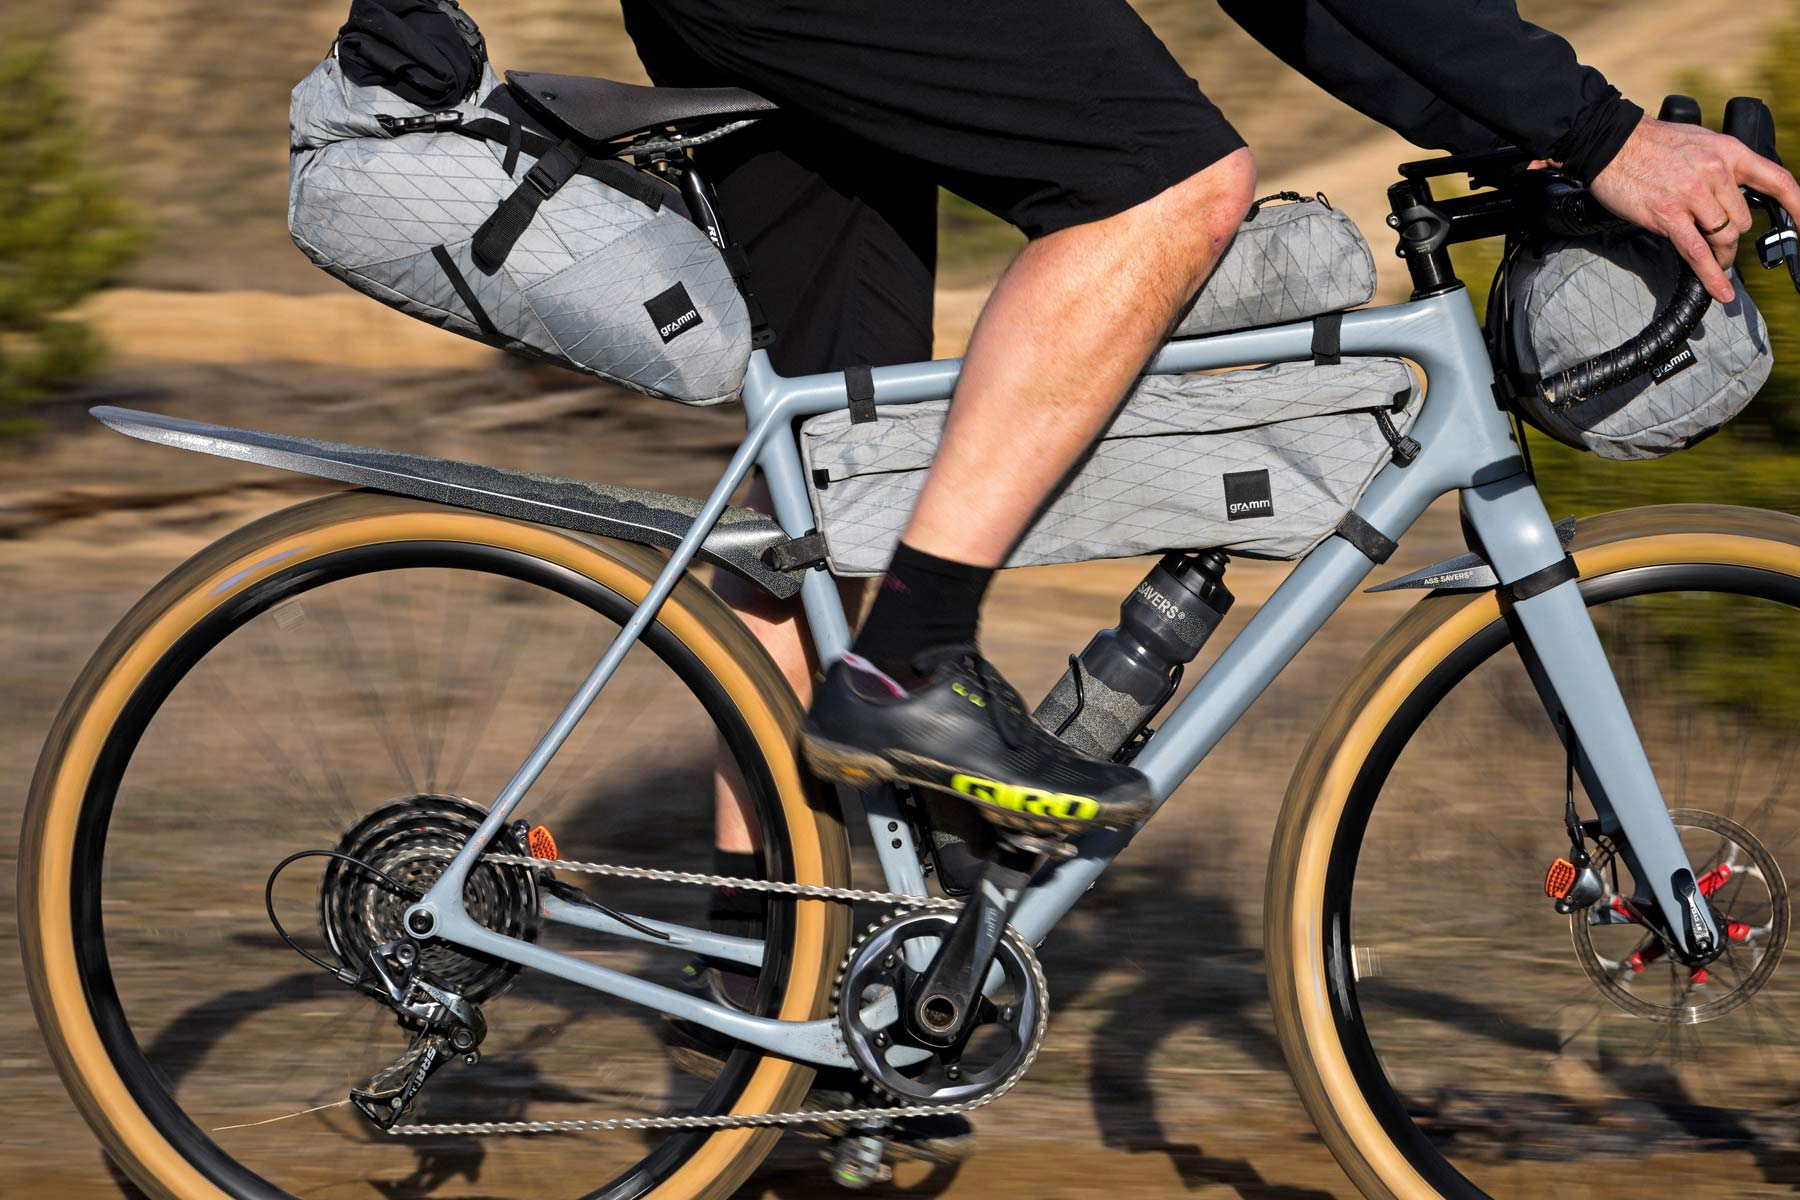 Ass Savers takes a Detour with limited edition bikepacking